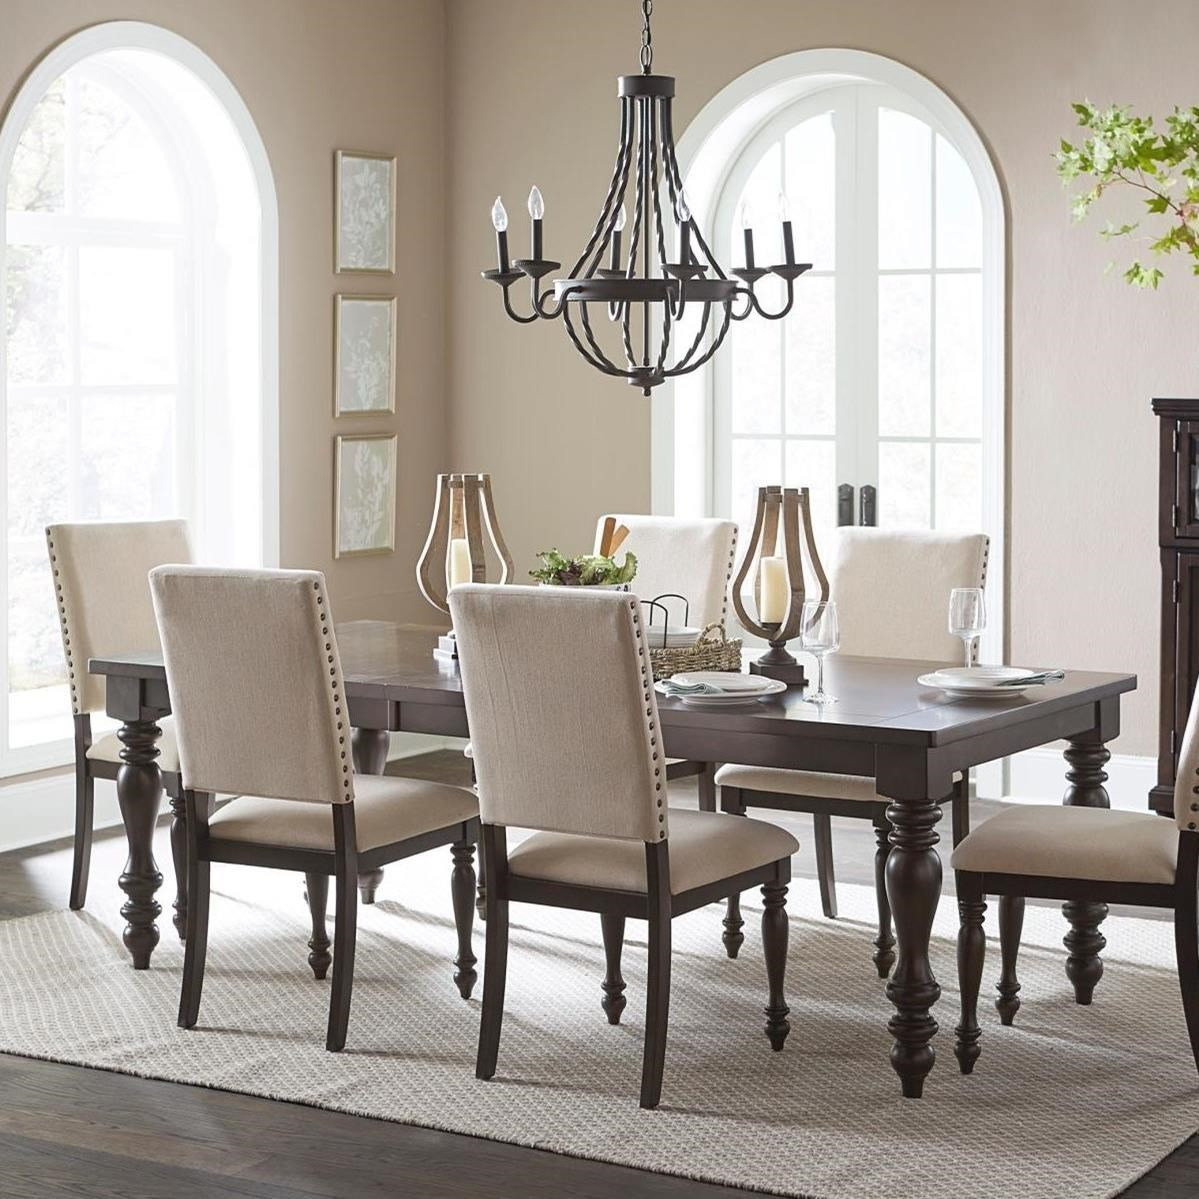 Begonia Transitional Dining Table With Turned Legs By Homelegance